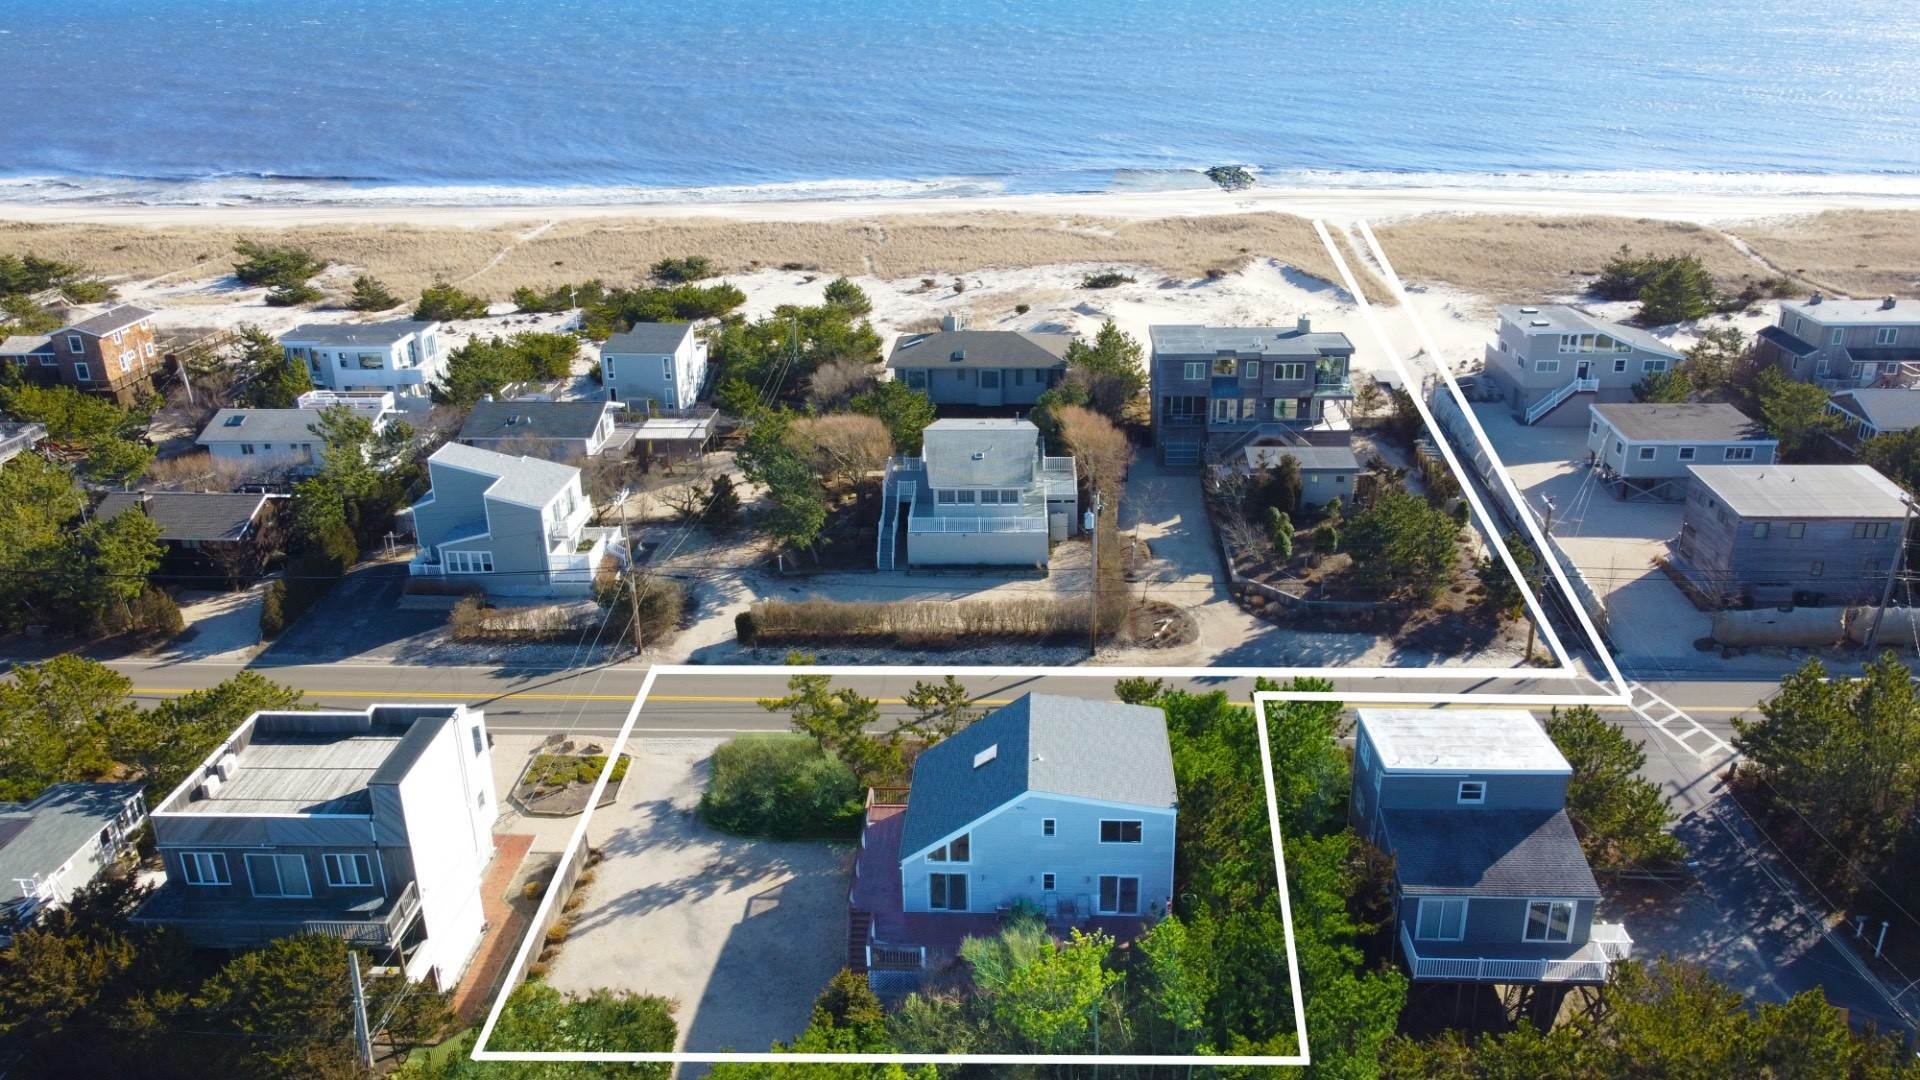 Single Family Home for Sale at Your Chance To Own A Summer Residence On World Renowned Dune Rd 424a Dune Rd, Westhampton Beach Village, NY 11978